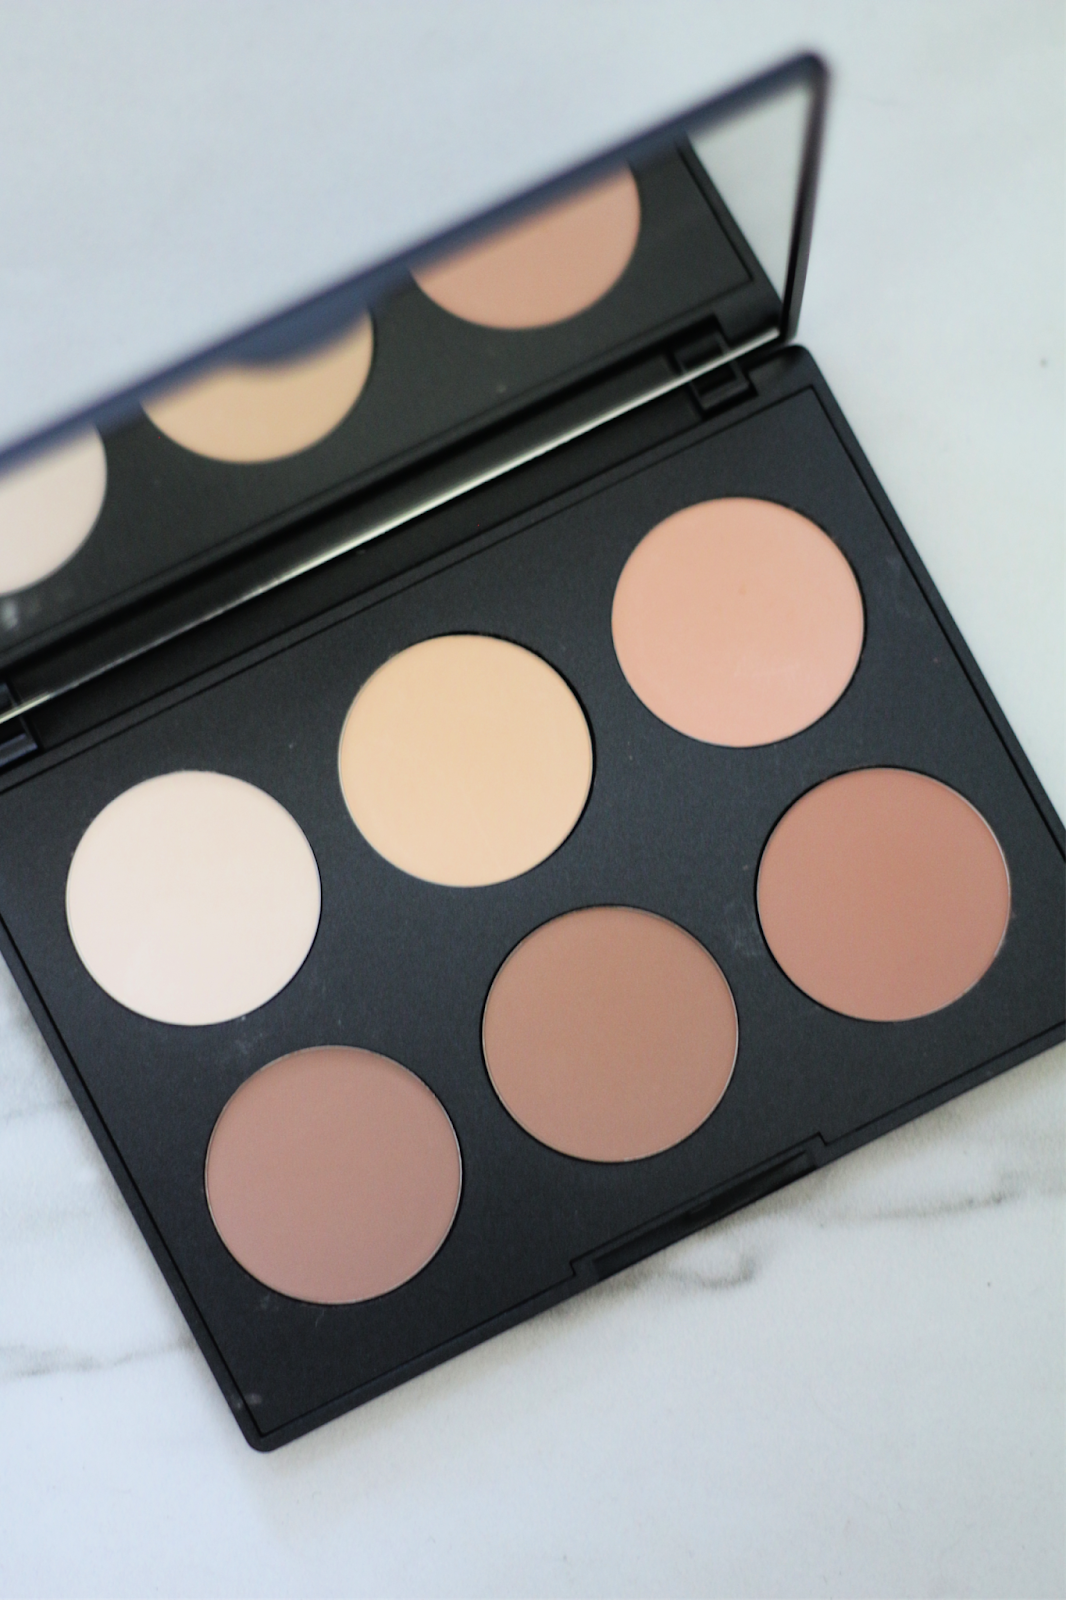 Profusion Studio Blush Palette Review and Swatches